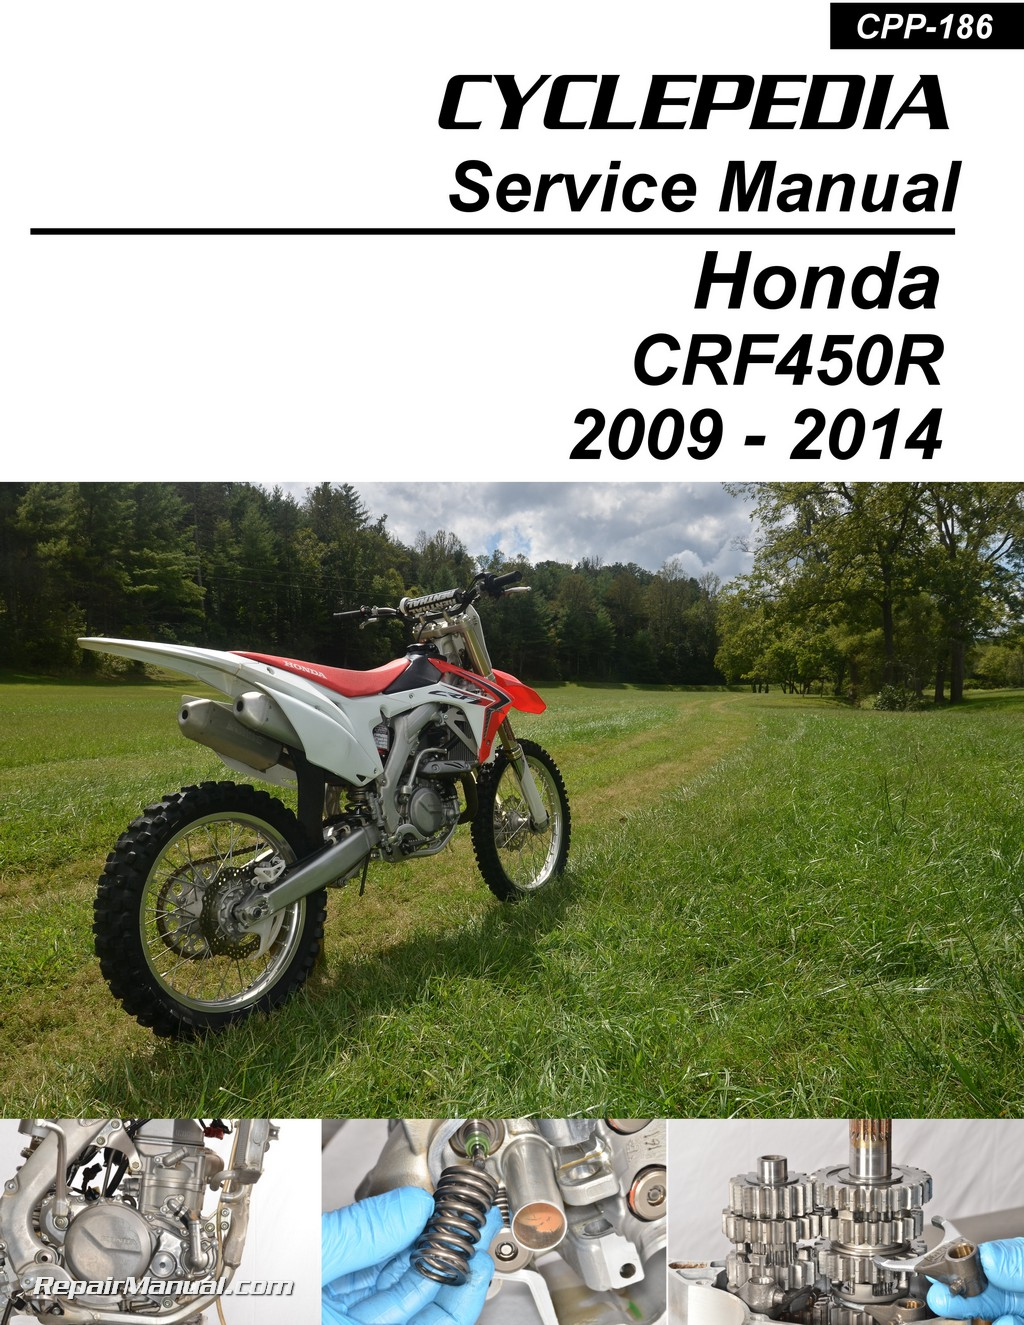 2004 Honda 450r Wiring Diagram Electrical Diagrams 2009 Crf450r Product U2022 Rincon